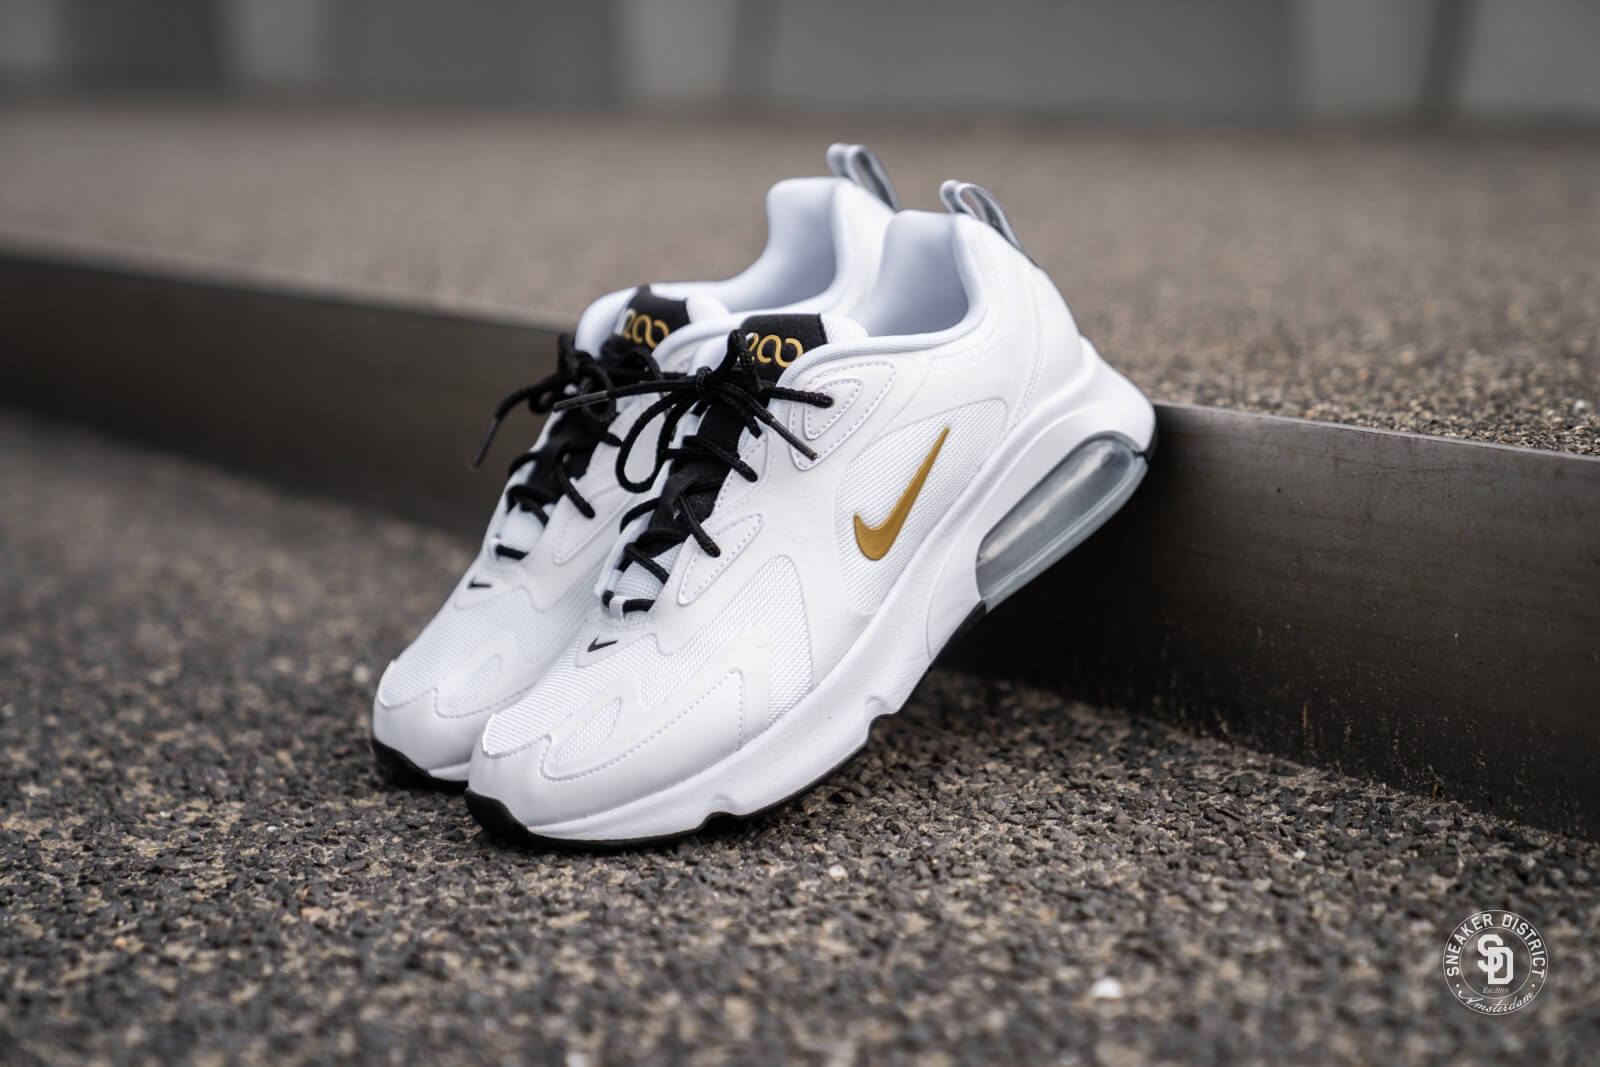 Nike Air Max 200 WhiteMetallic Gold Black AQ2568 102